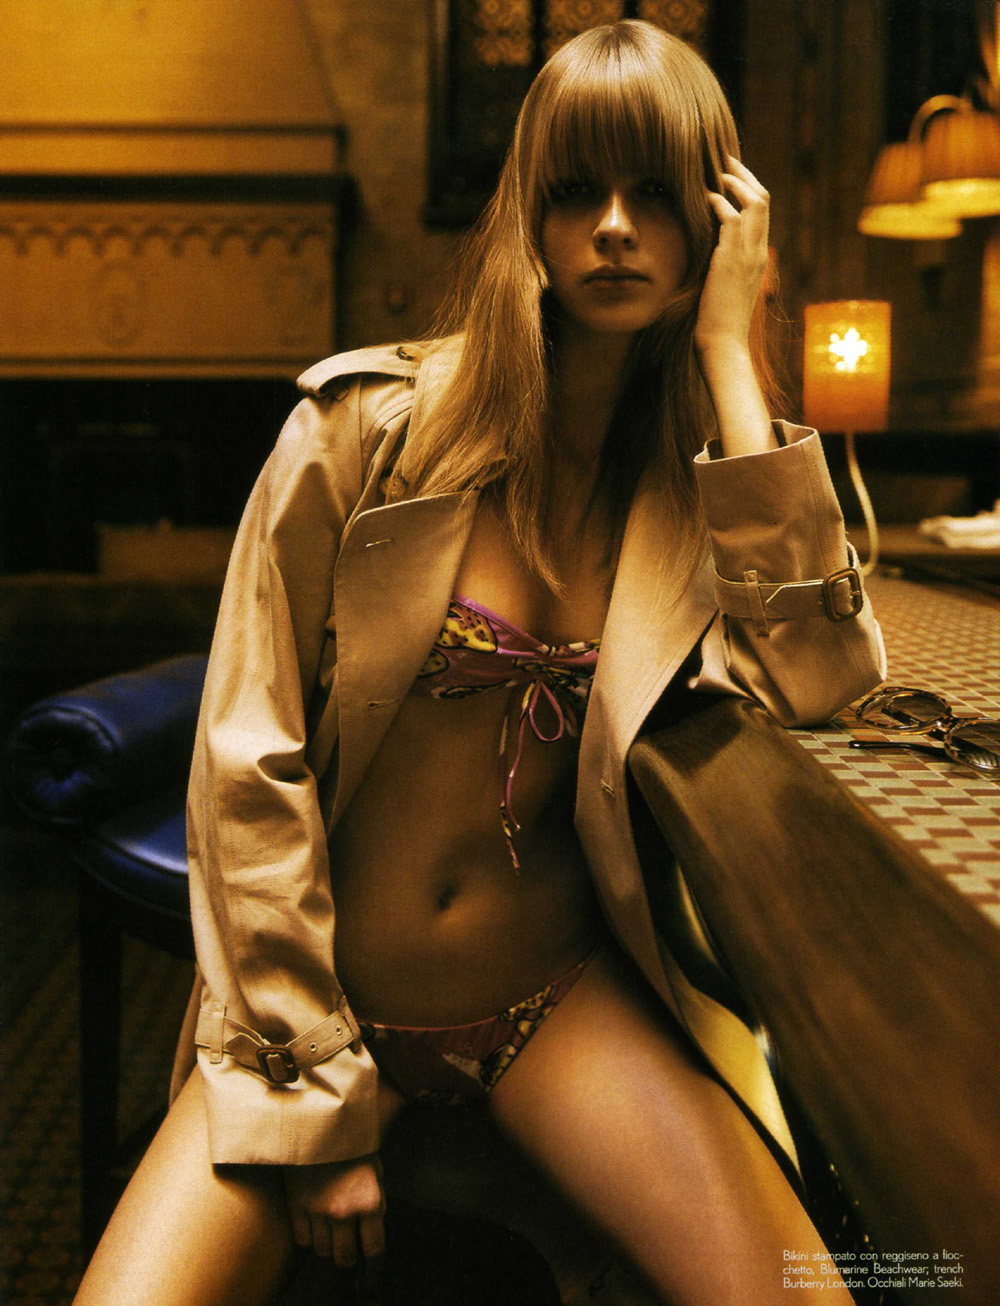 Vogue Italia June 2009 via www.fashionedbylove.co.uk